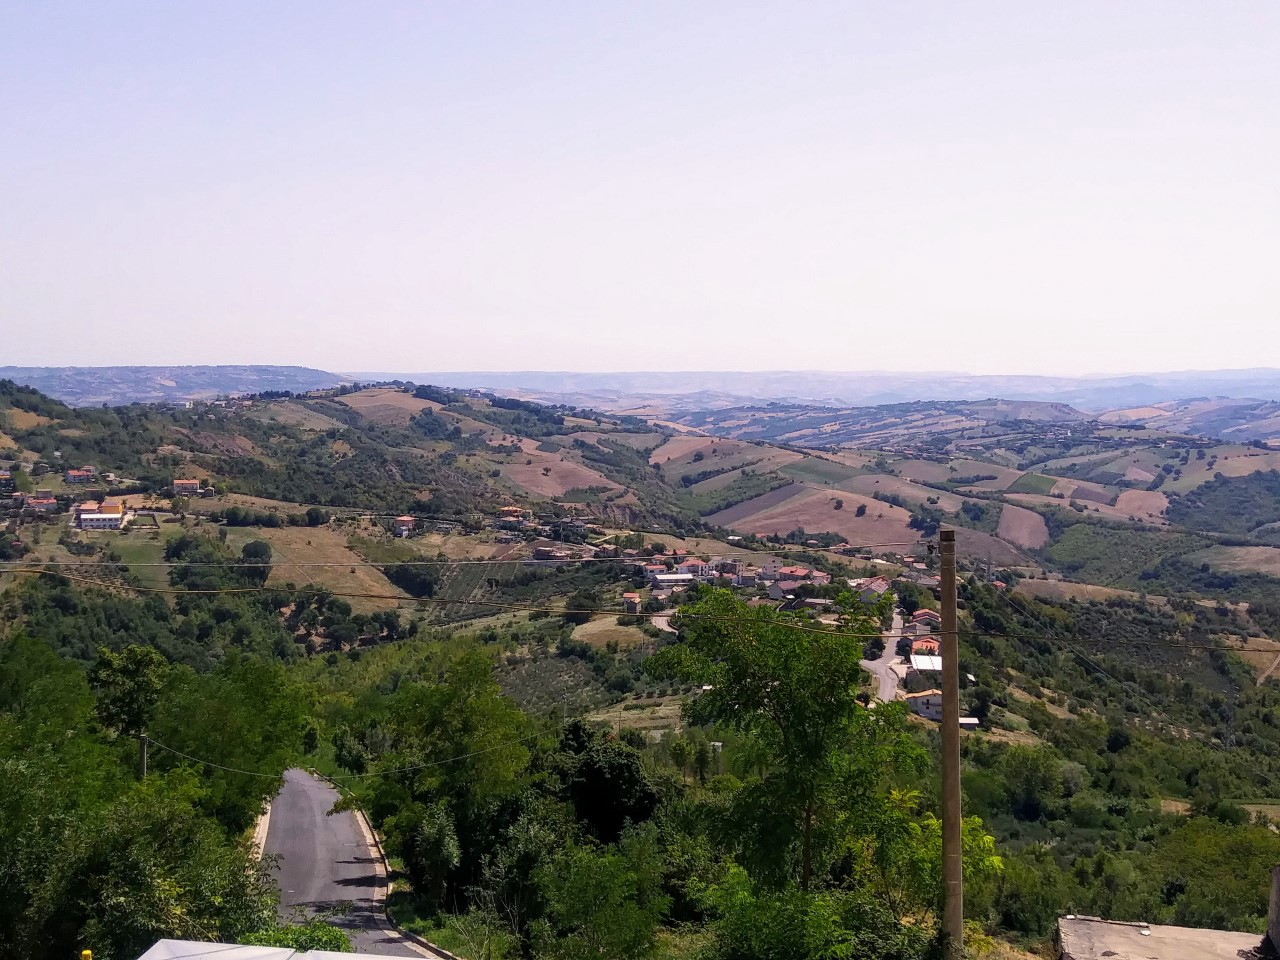 A panorama of Guardiagrele in Abruzzo, Italy shows green rolling hills and mountains.